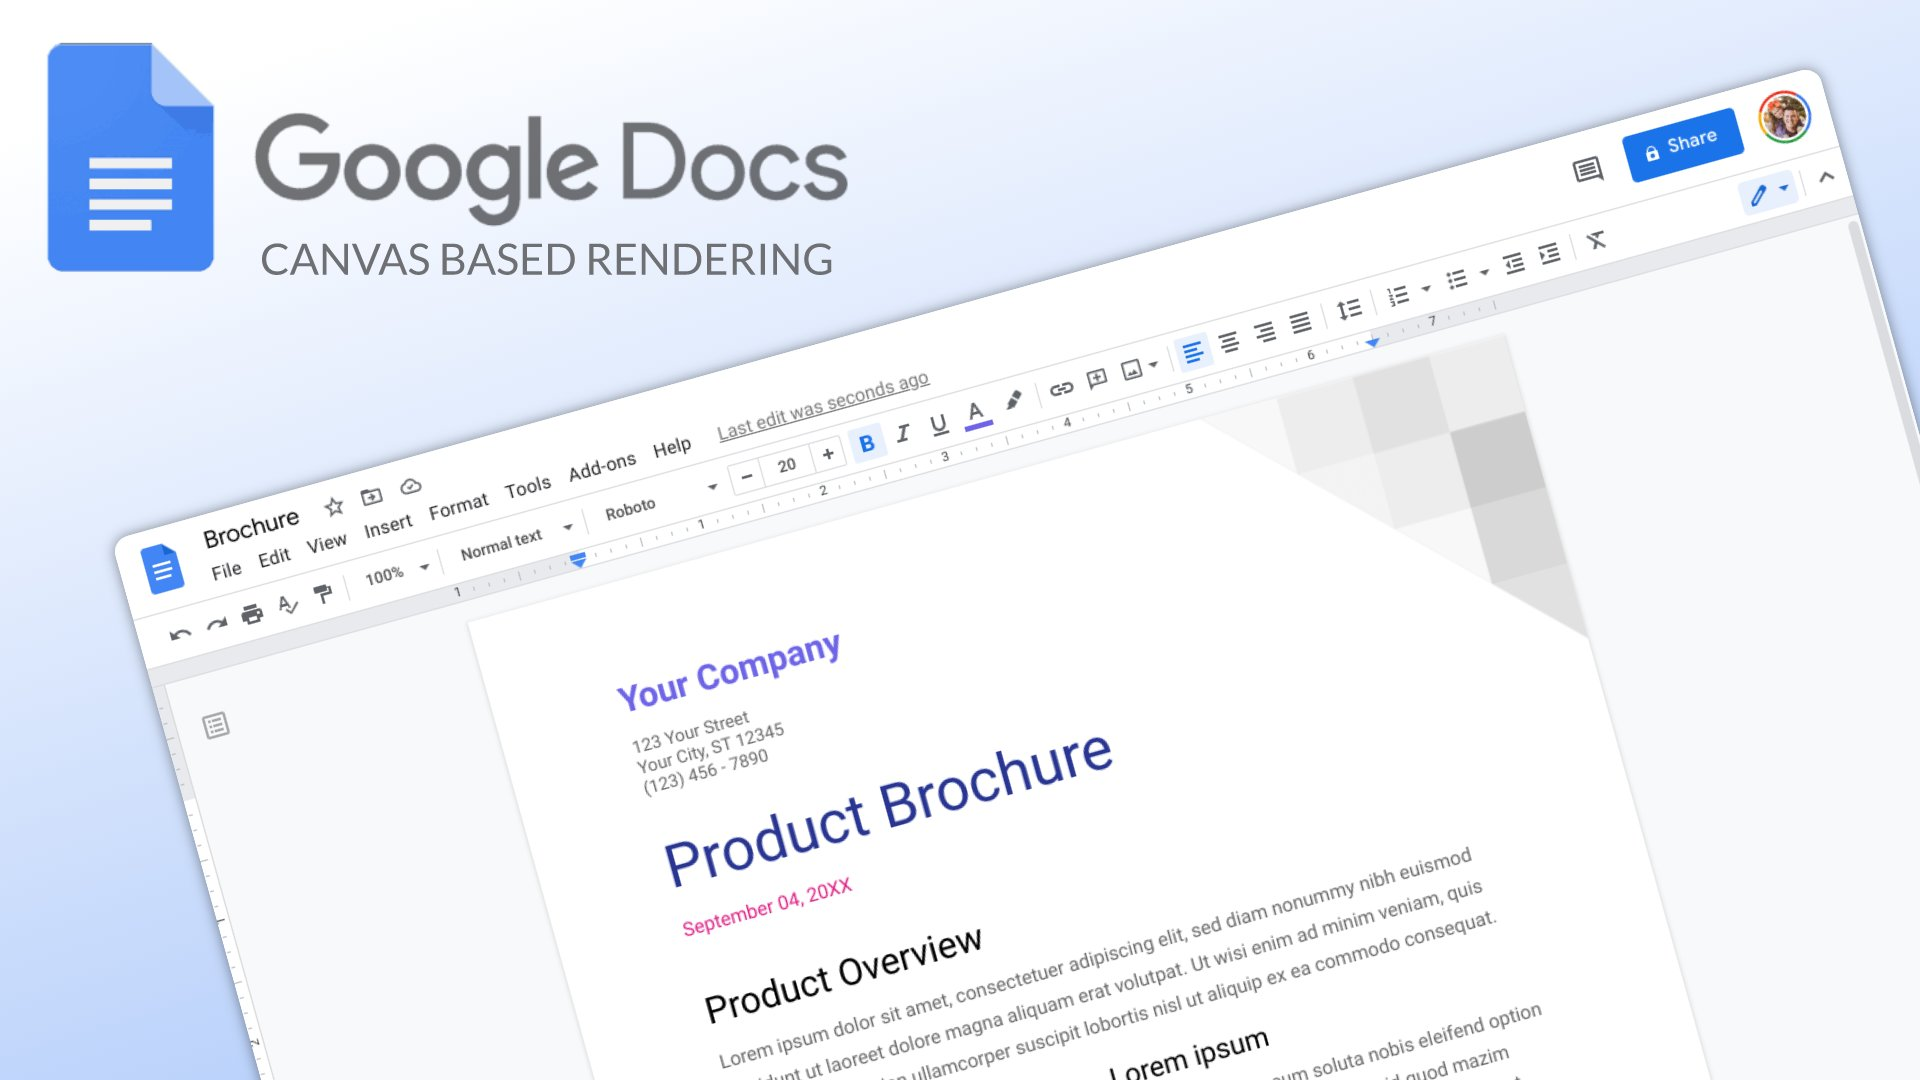 Google is rolling out a big update to speed up Google Docs rendering for everyone